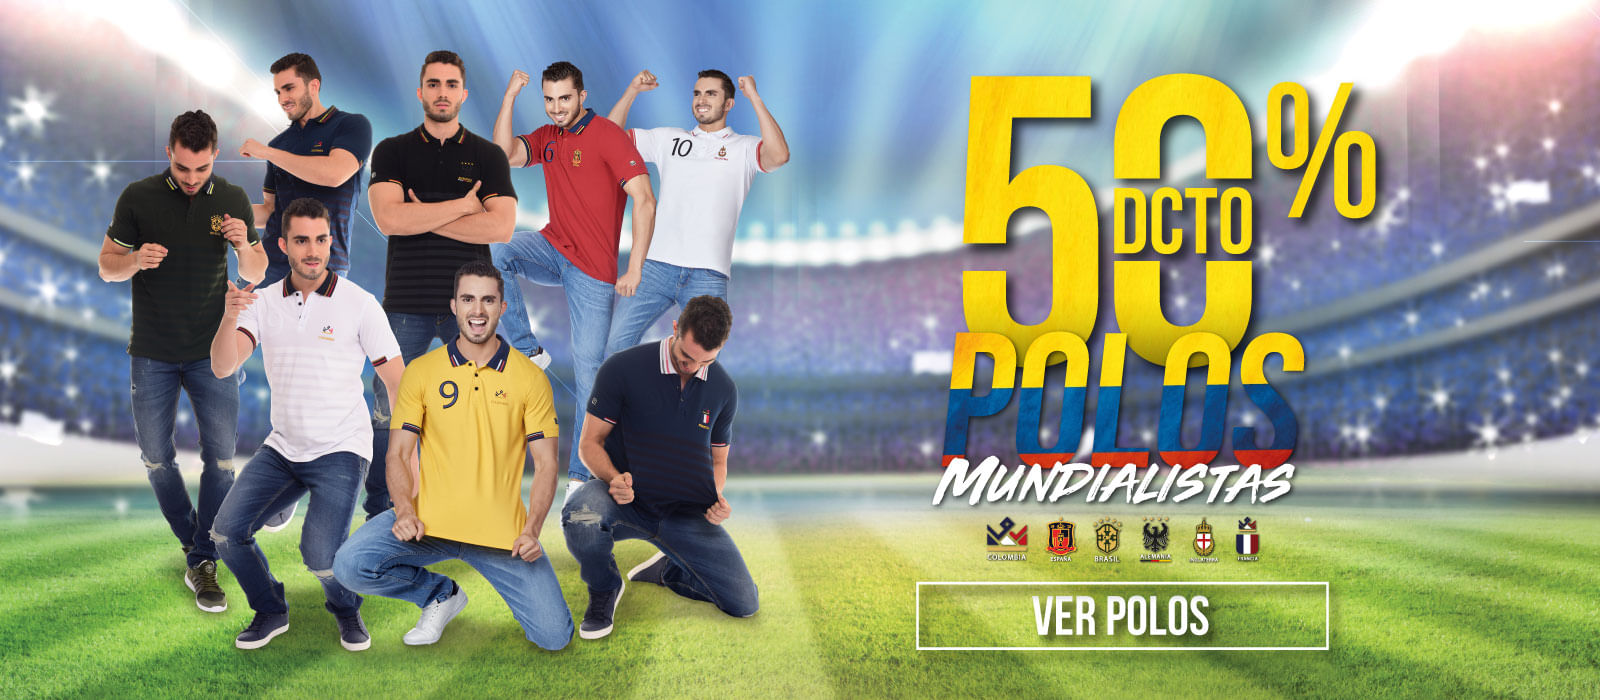 Polos Quest mundial